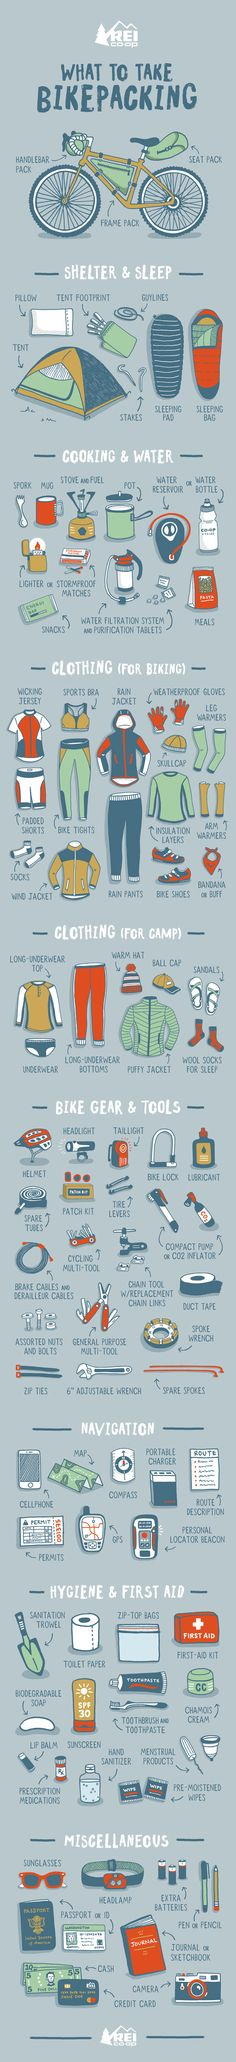 Getting ready to head out on a bikepacking adventure? Our comprehensive checklist includes essentials for biking and camping. Pedal power for the win!